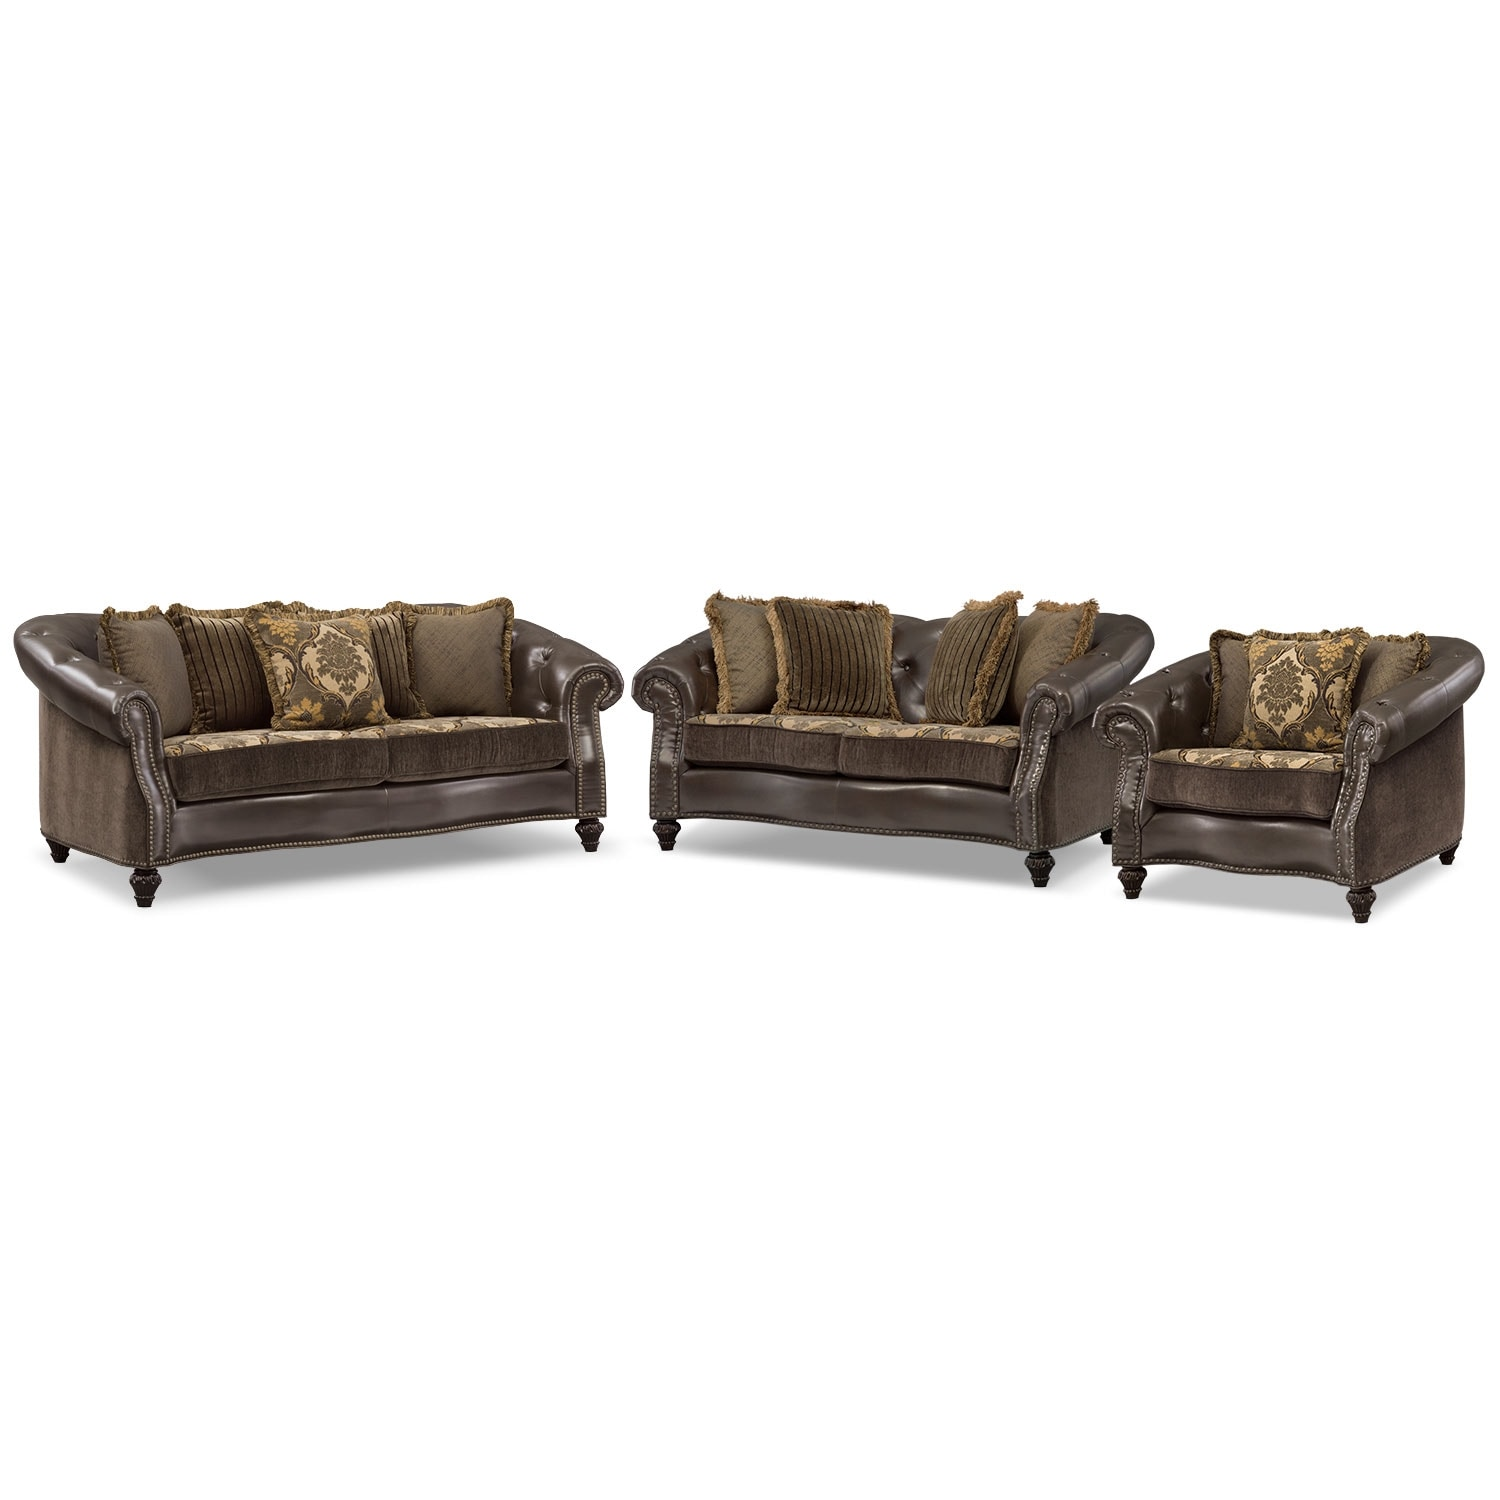 Living Room Furniture - Nicholas 3 Pc. Living Room